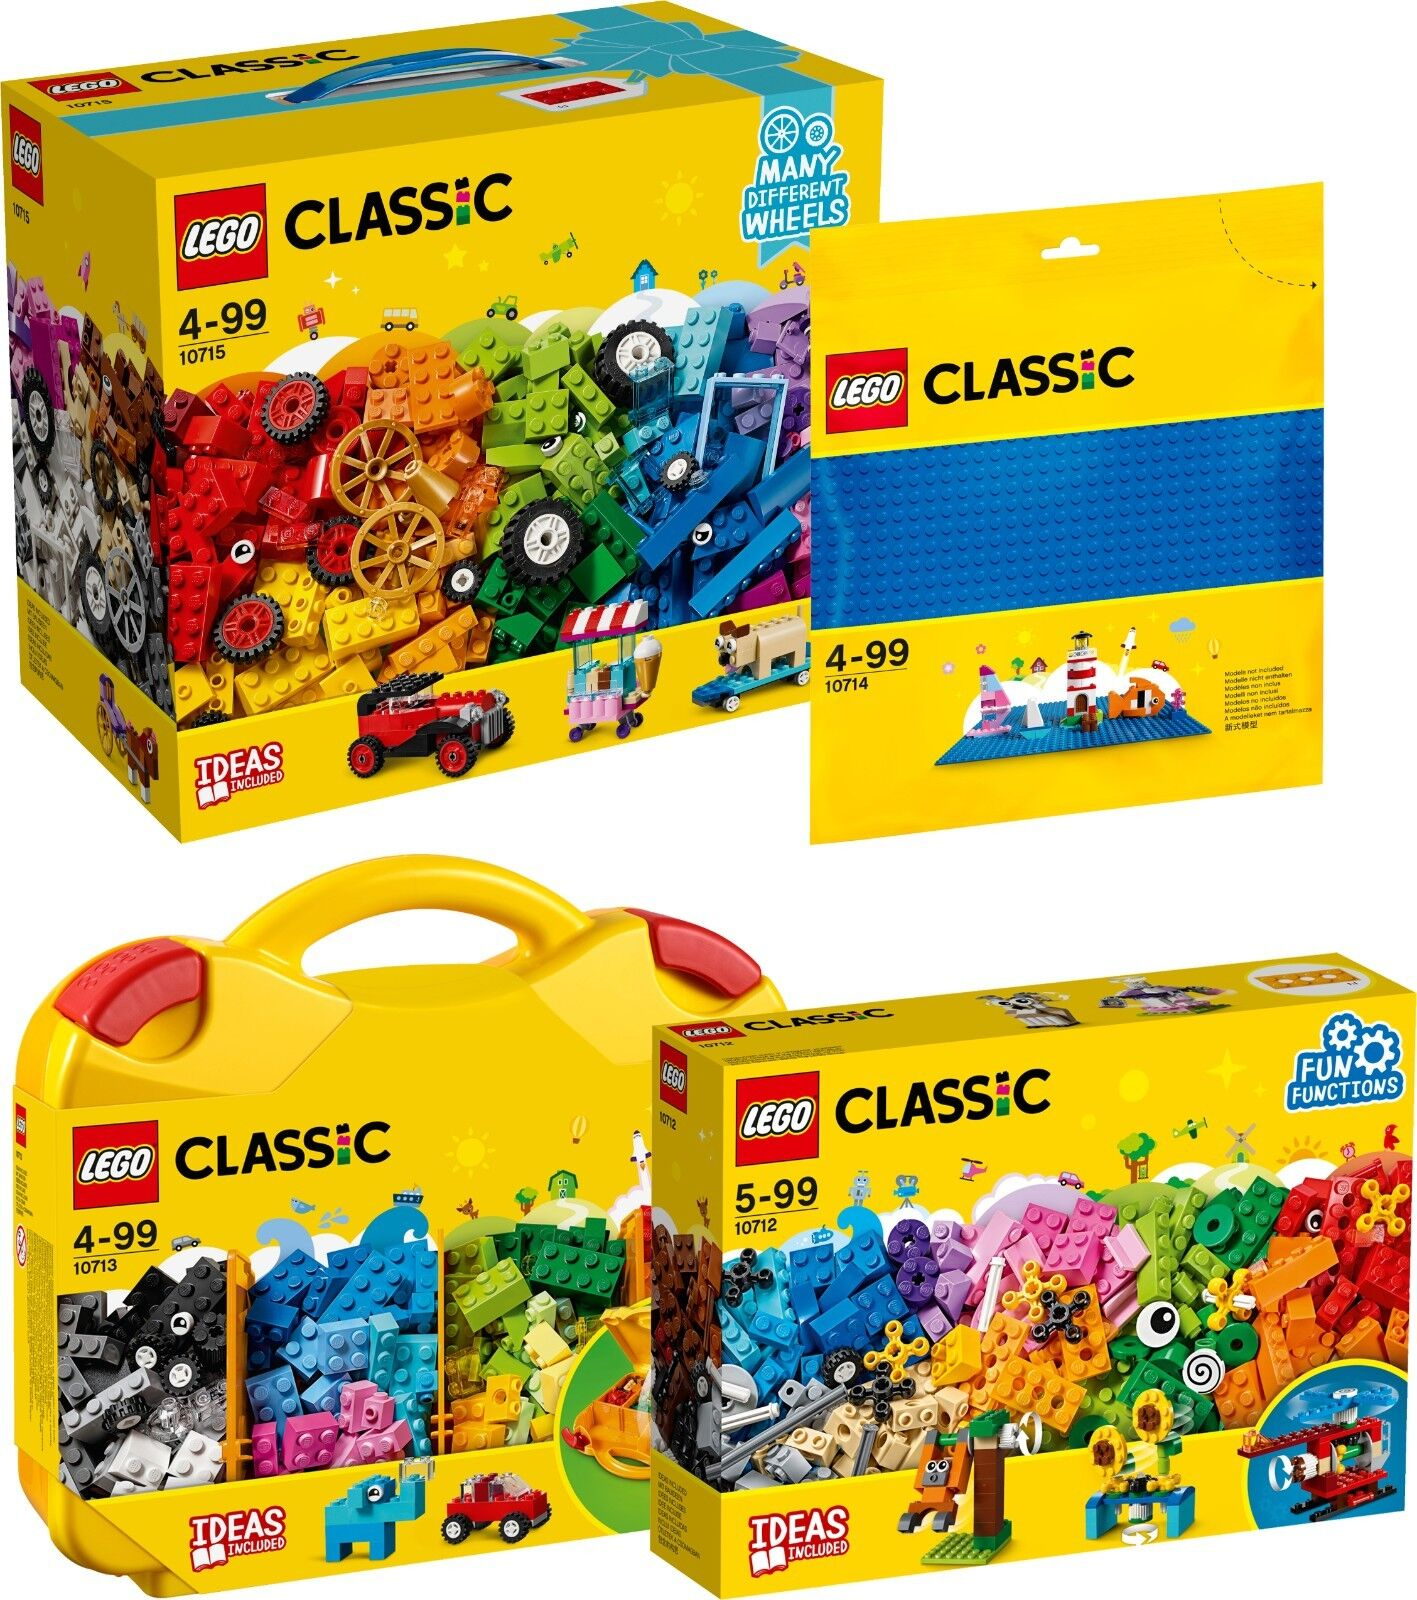 Avoir une maison, avoir de l'amour, l'amour, l'amour, as-tu LEGO Classic New Set 10715 10714 10713 10712 n2/18 9b6468